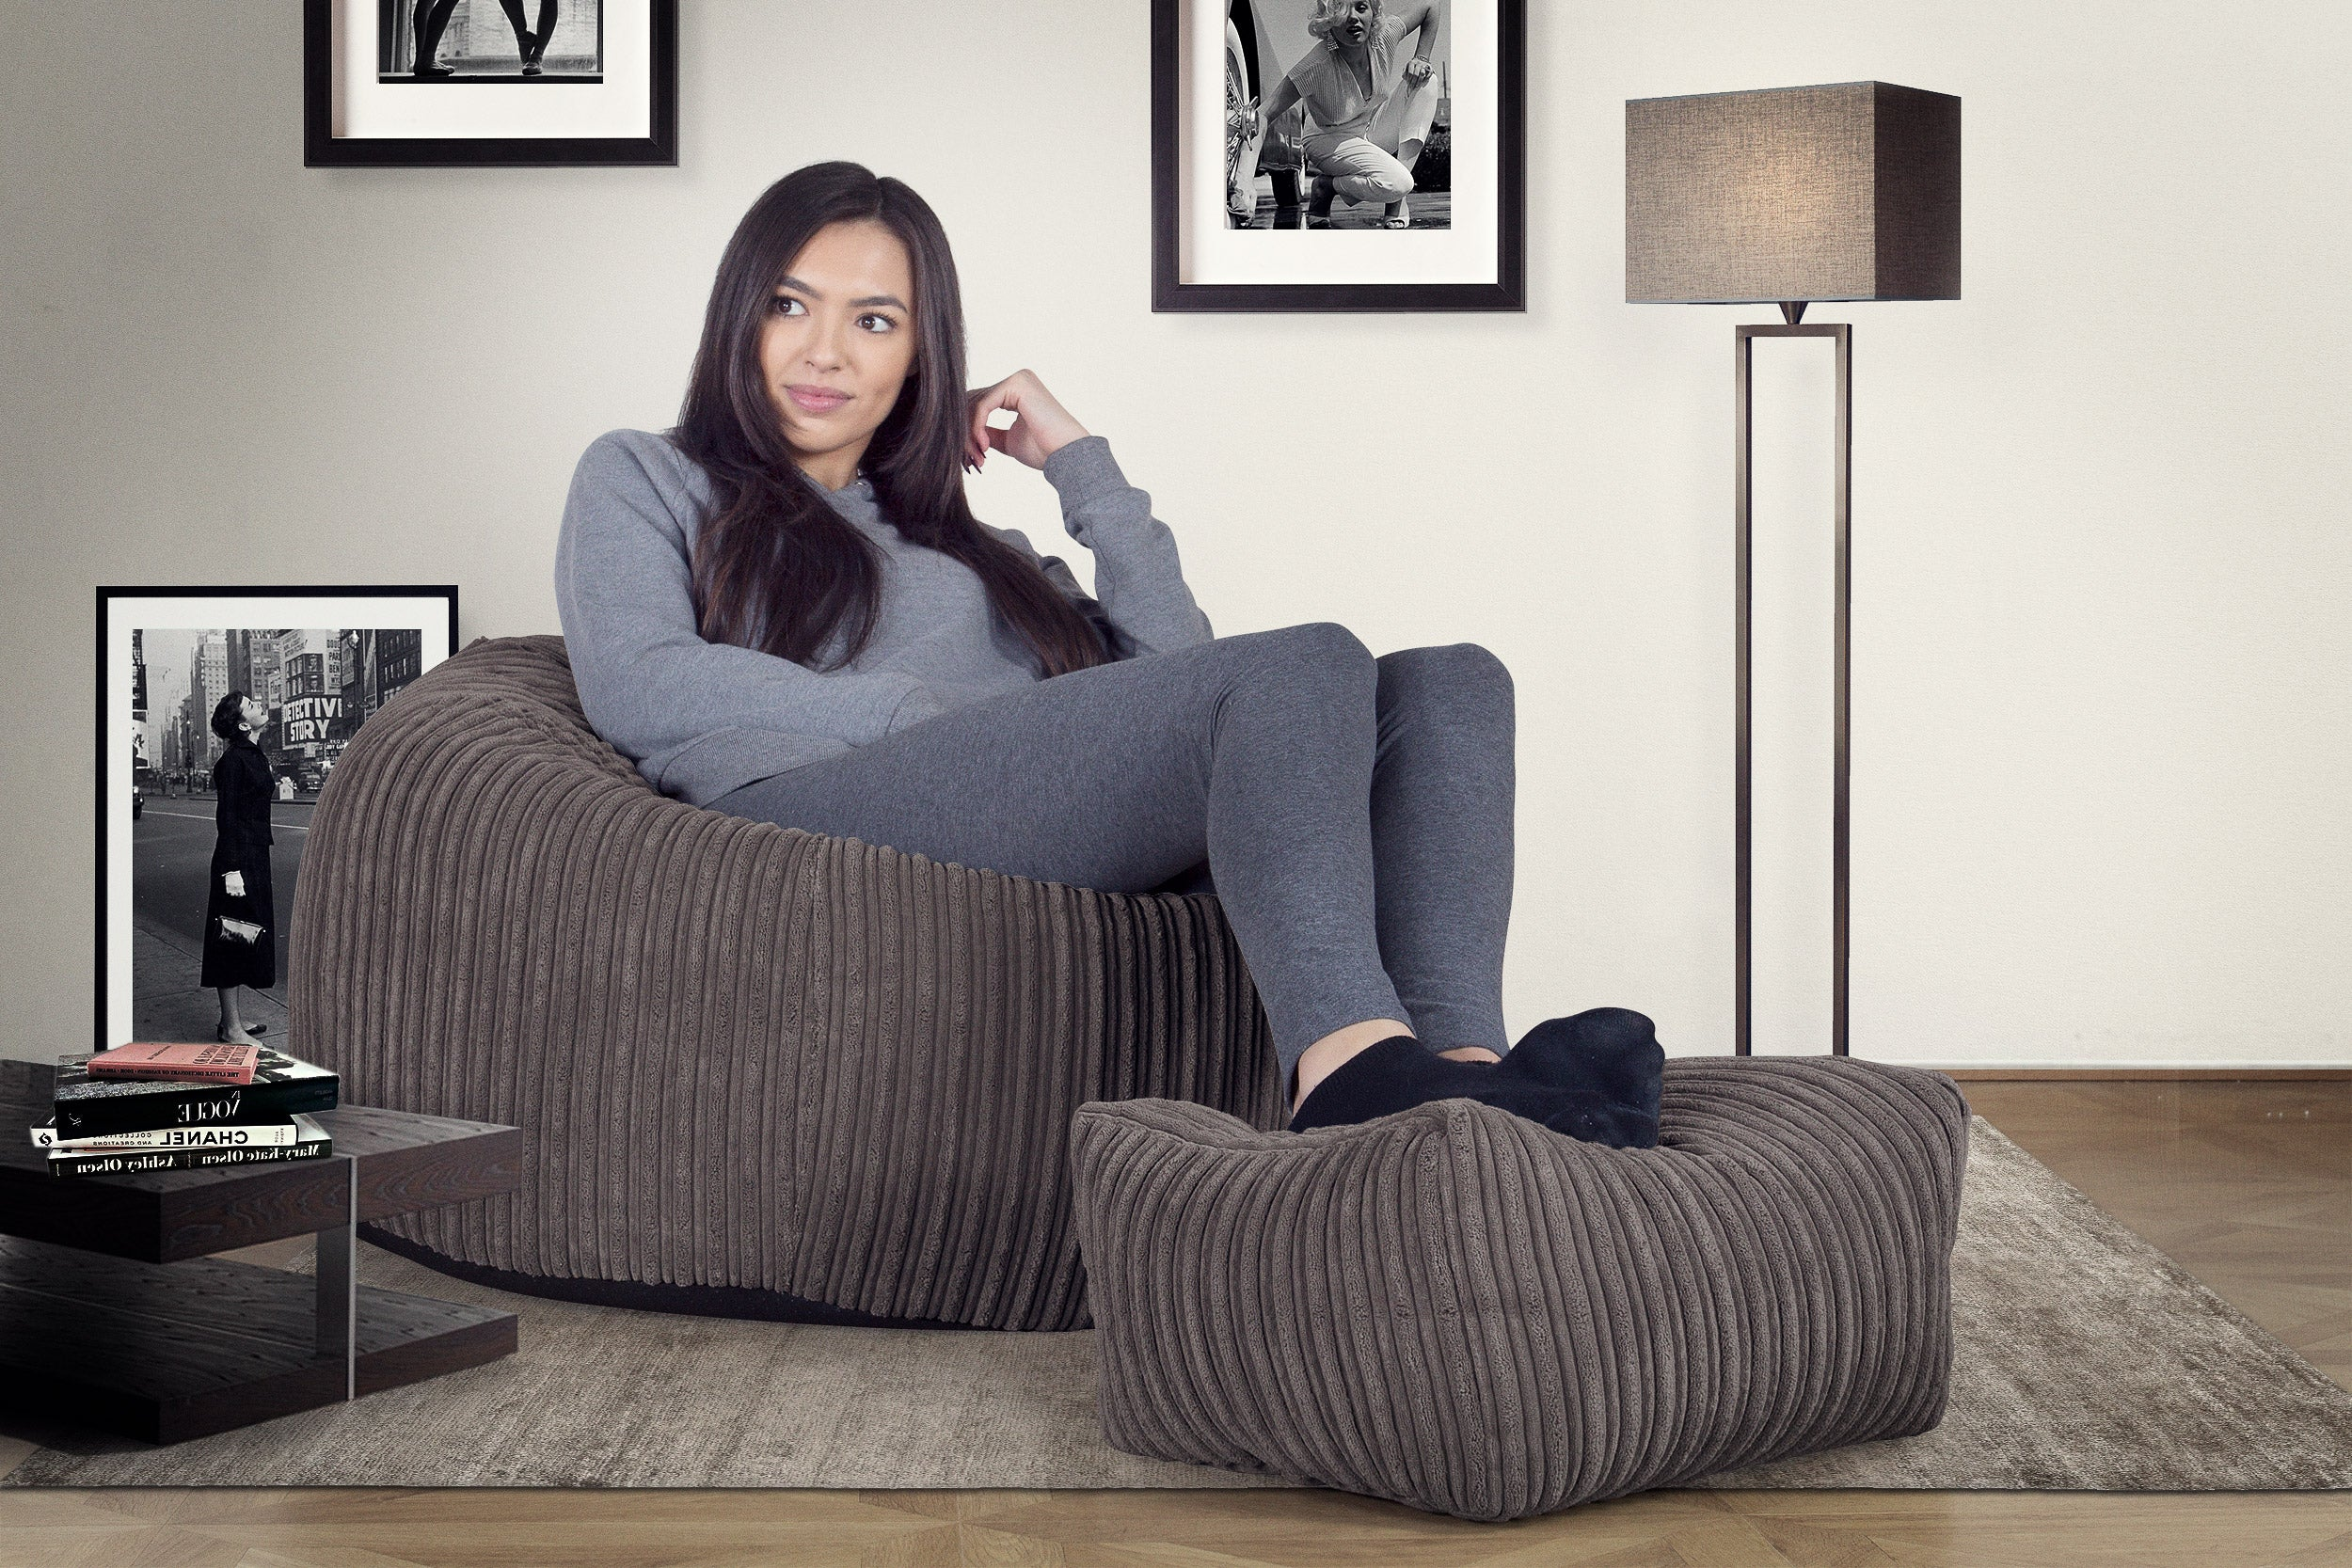 Classic Bean Bag Chair - Cord Graphite Grey